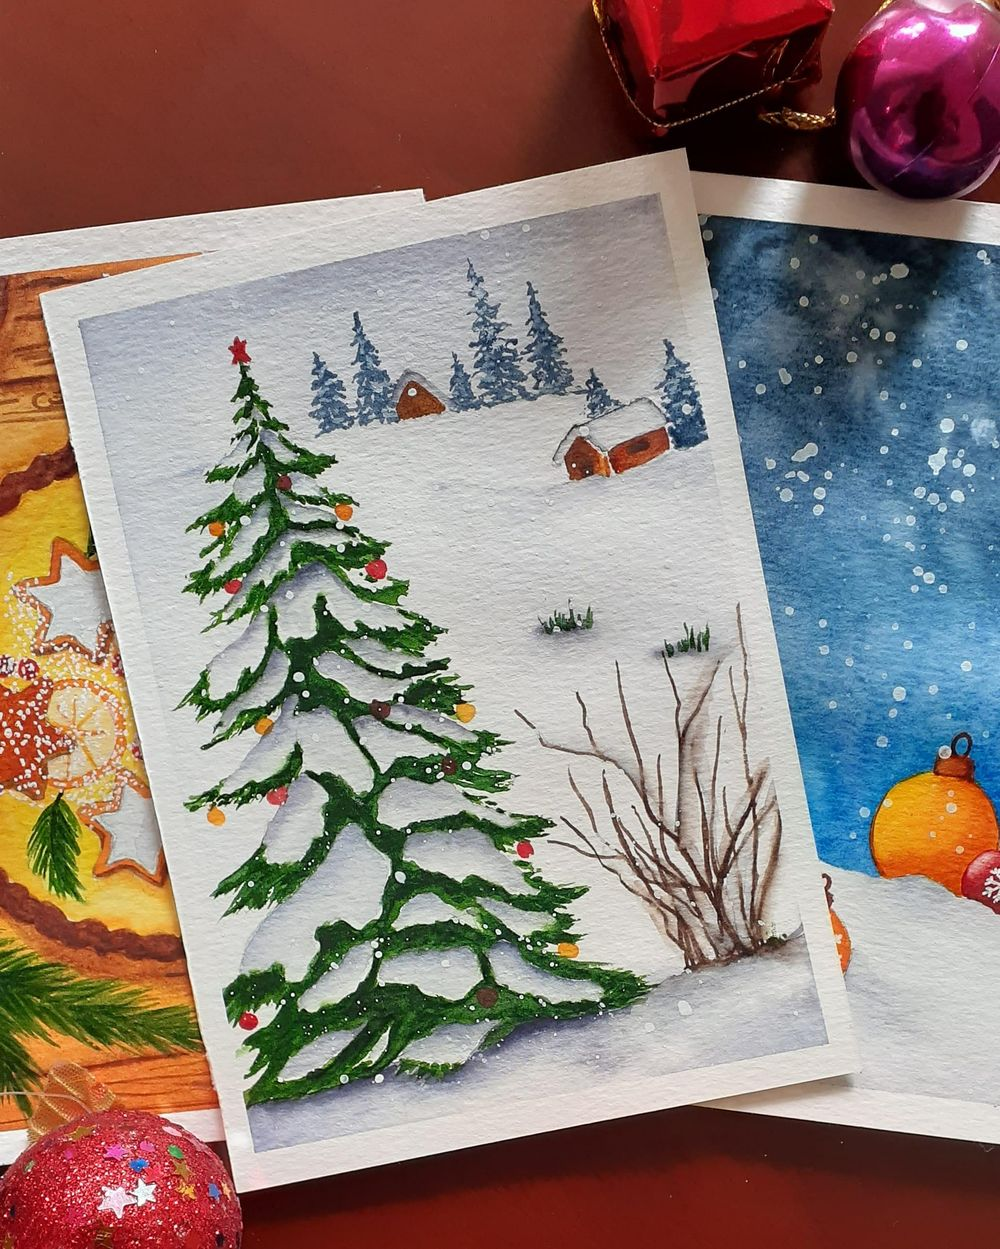 Countdown to Christmas with 24 Beautiful Paintings - image 4 - student project